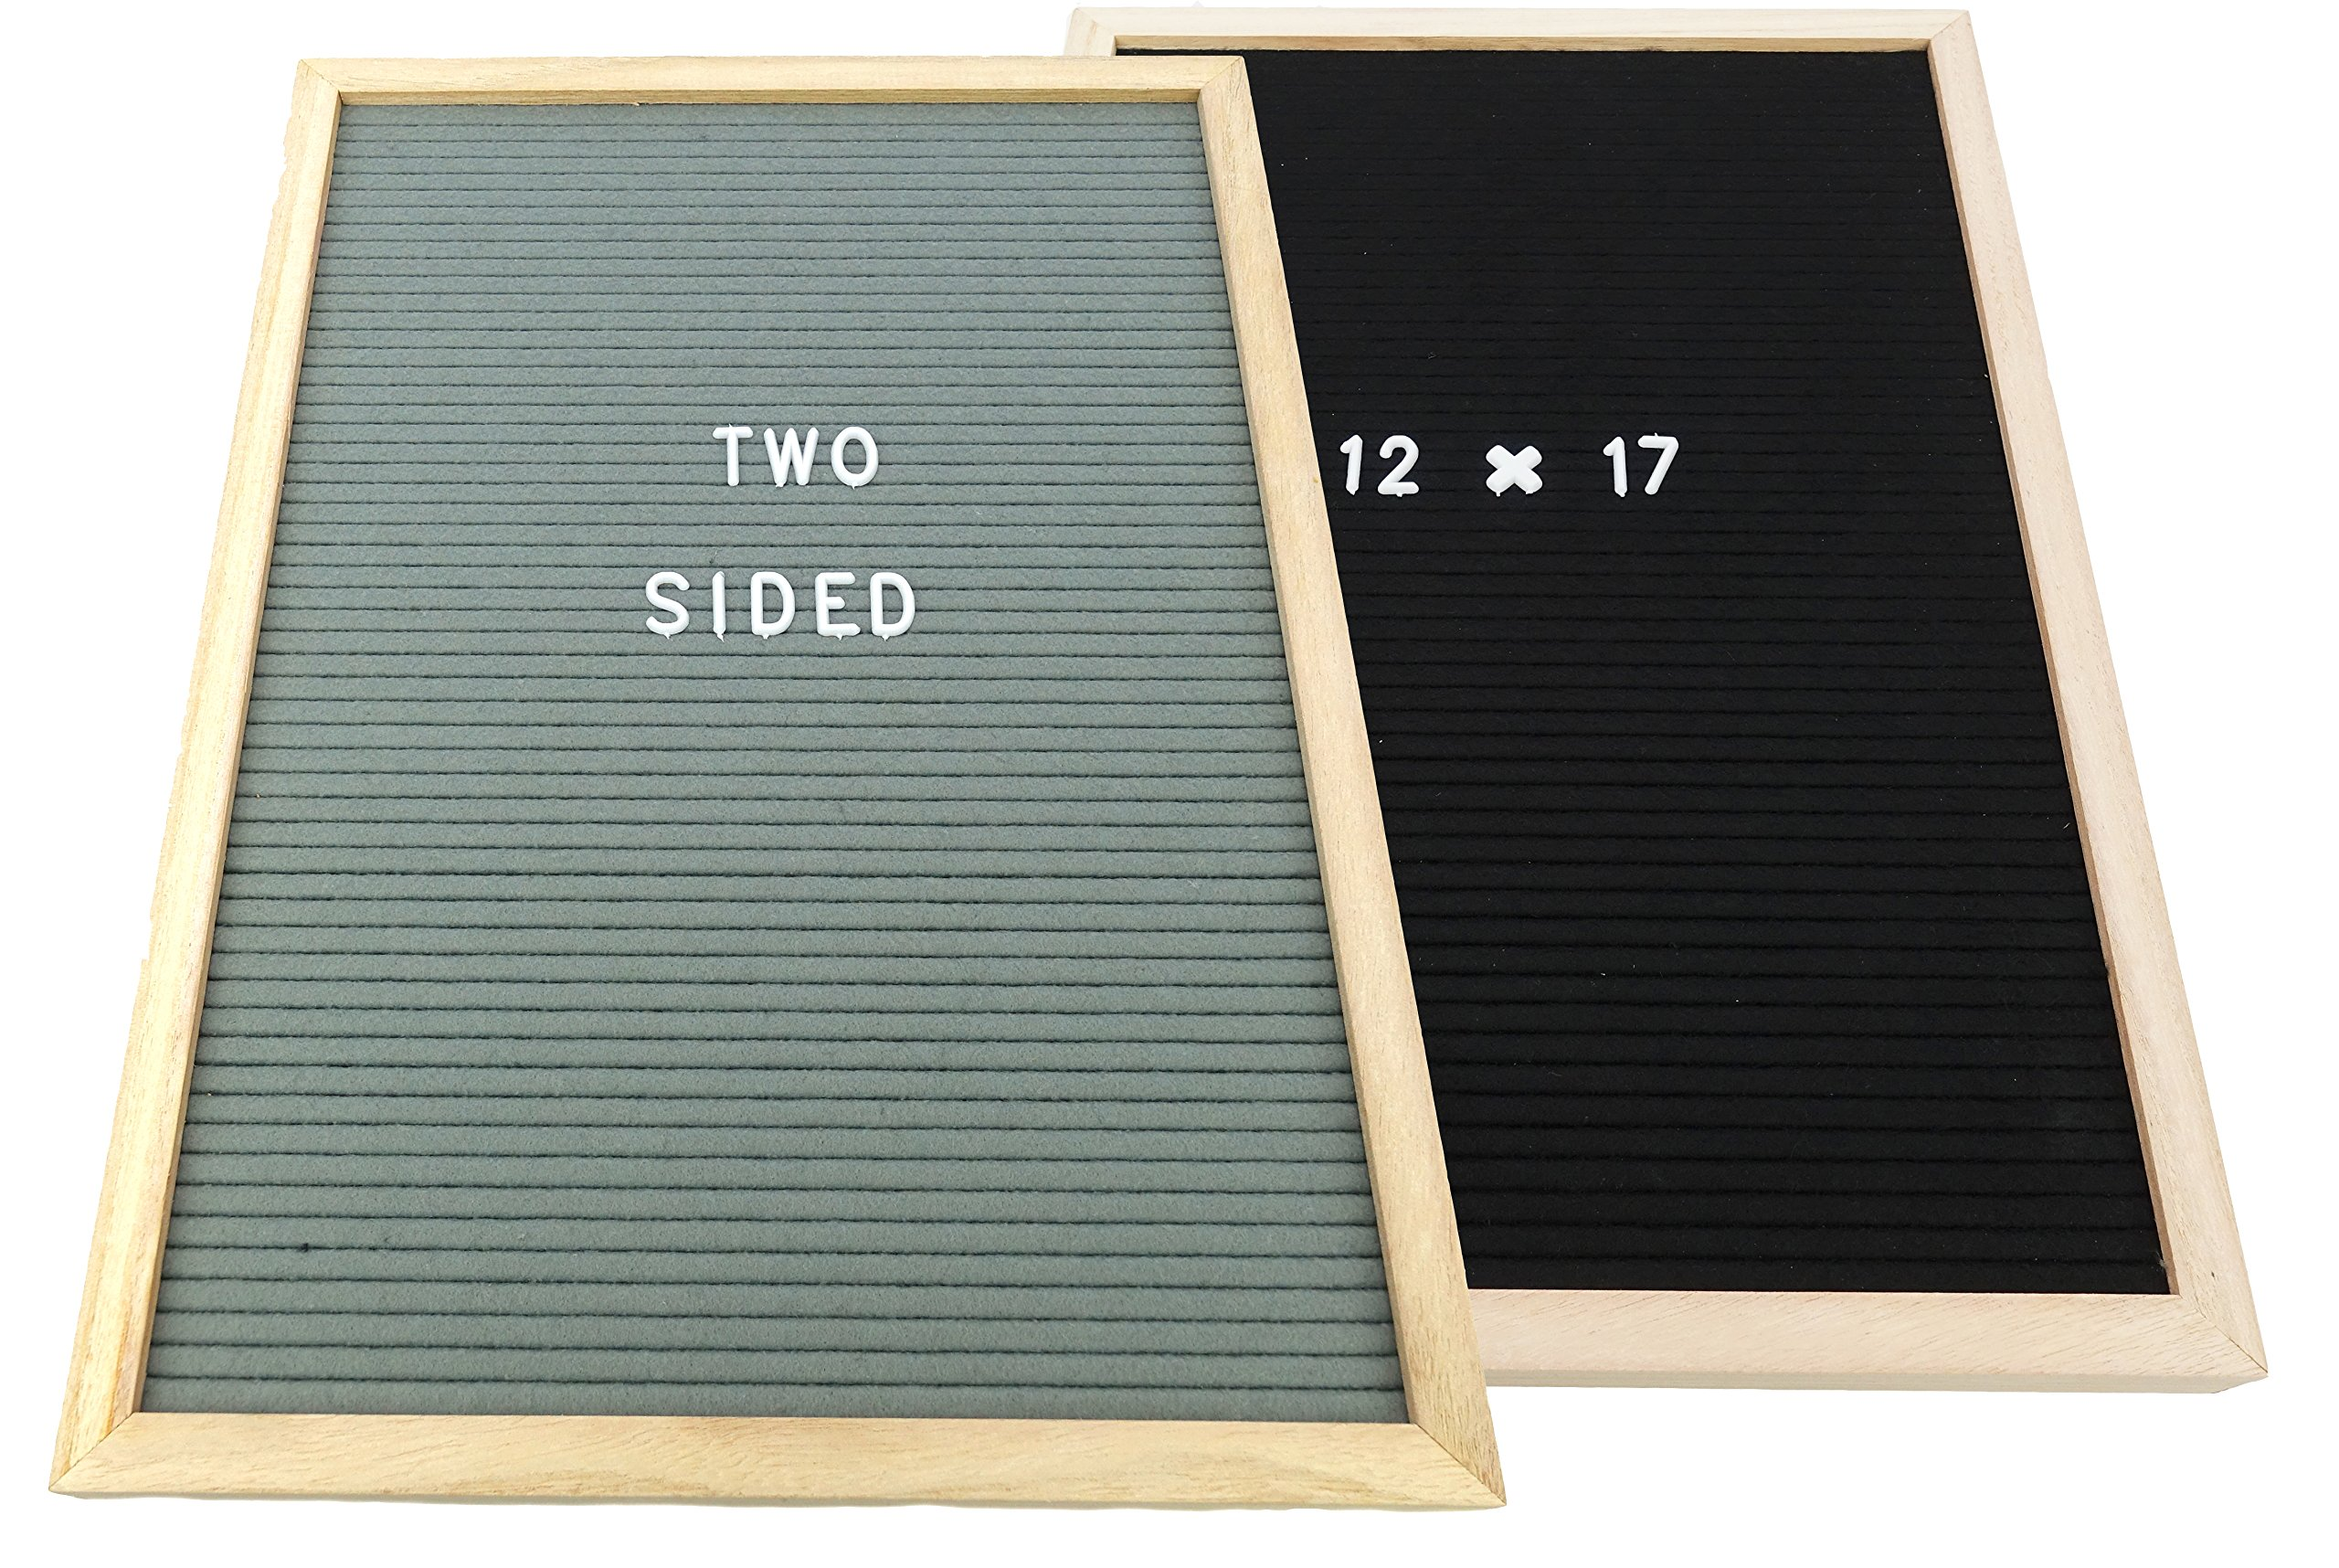 12X17 INCH Felt Letter Board TWO SIDED - Black & Gray Reversible - Message Menu Sign 10 x 10 and 12 x 12 and 12 x 17 inch Oak Wooden Frame - Changeable Letter Board w/270 White Letters (12X17 INCH)